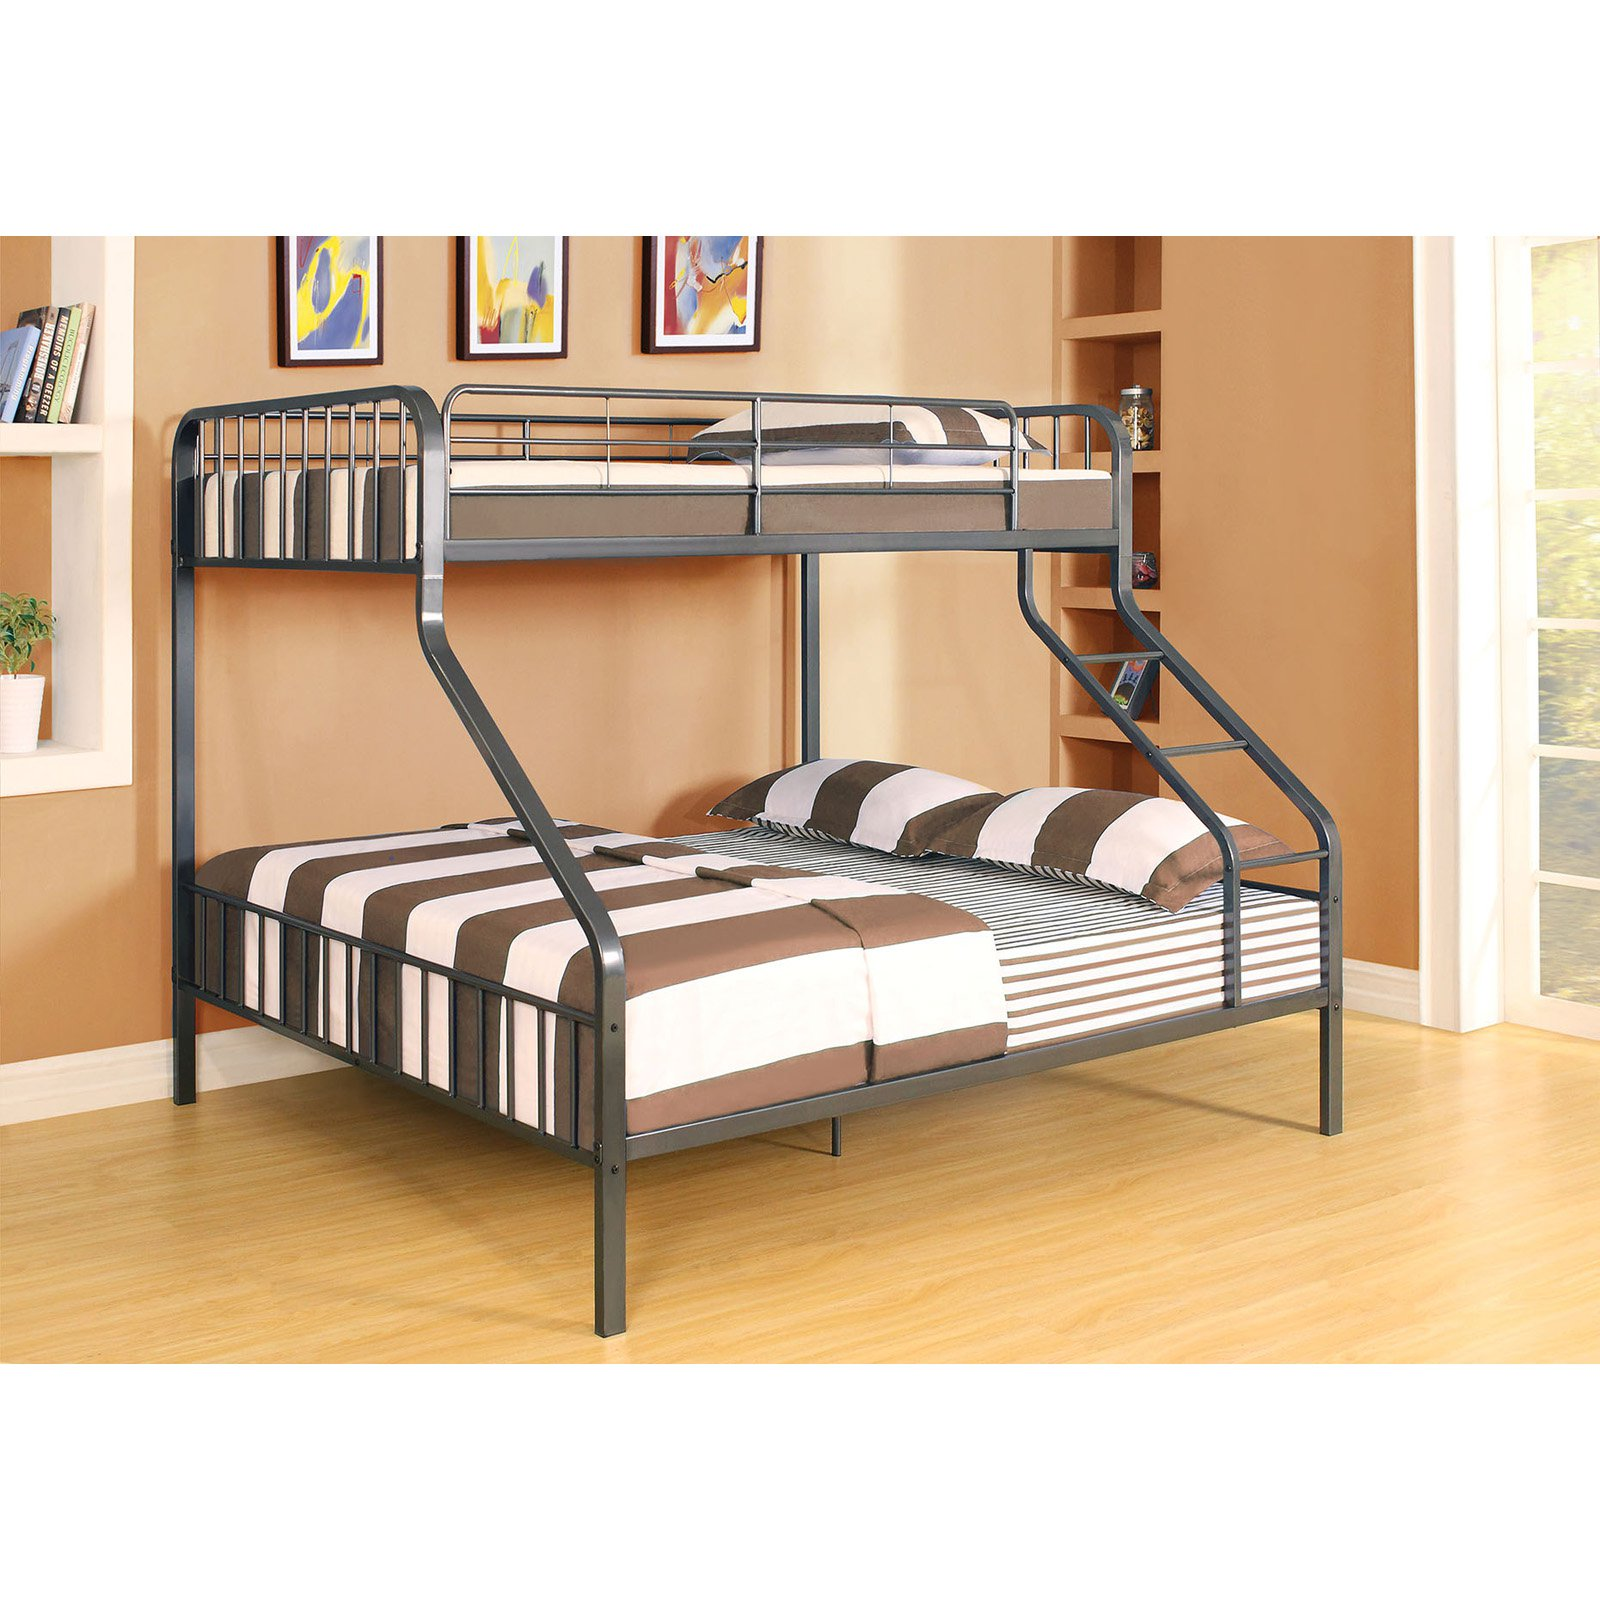 Acme Furniture Metal Caius Twin XL over Queen Bunk Bed